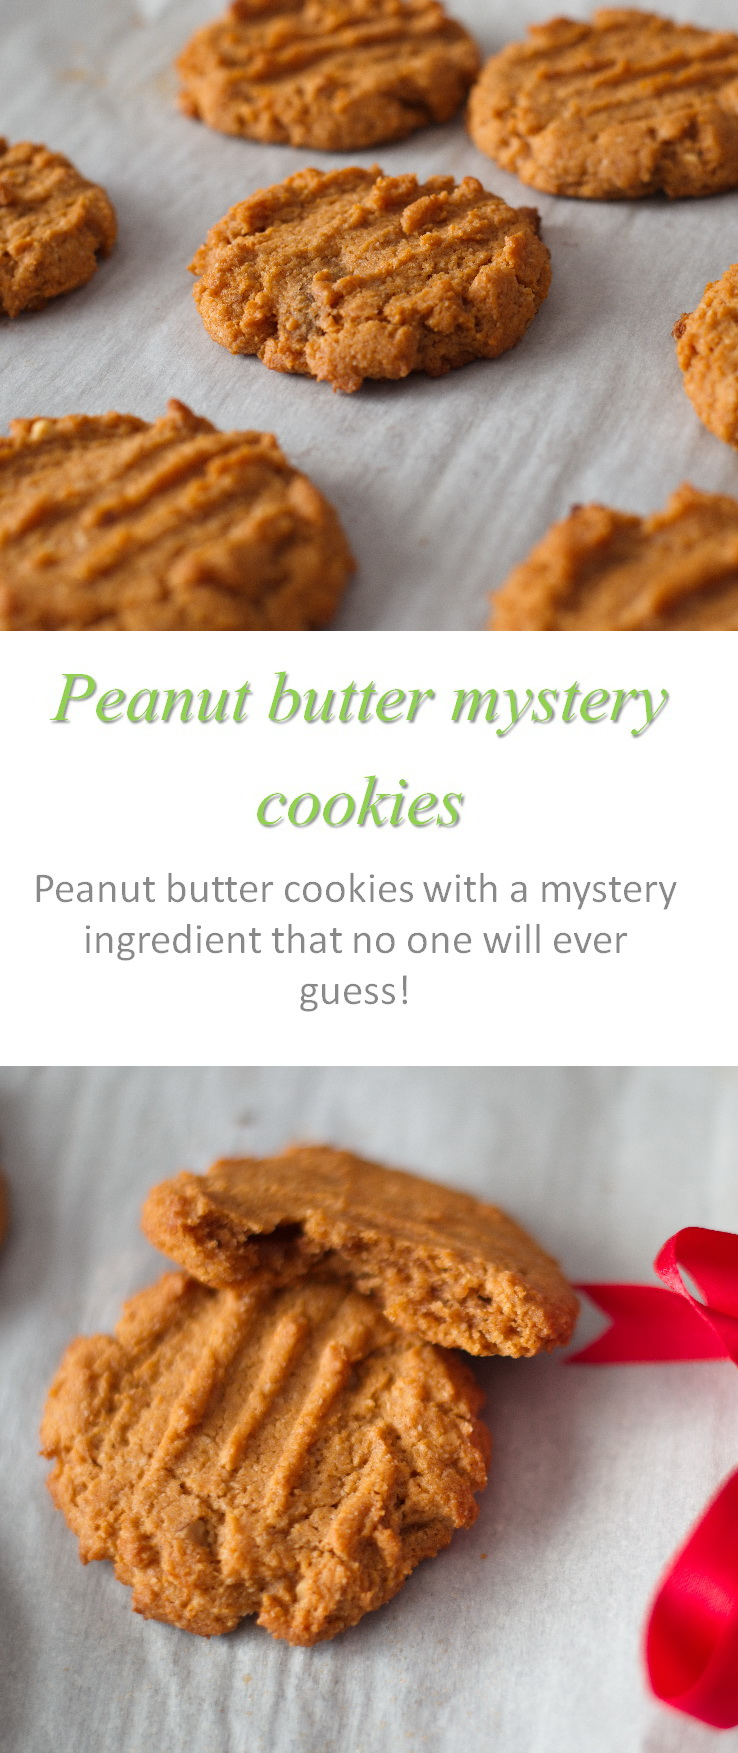 Gluten and dairy-free moist and chewy peanut butter mystery cookies - no one will ever guess what the secret ingredient is! #peanutbutter